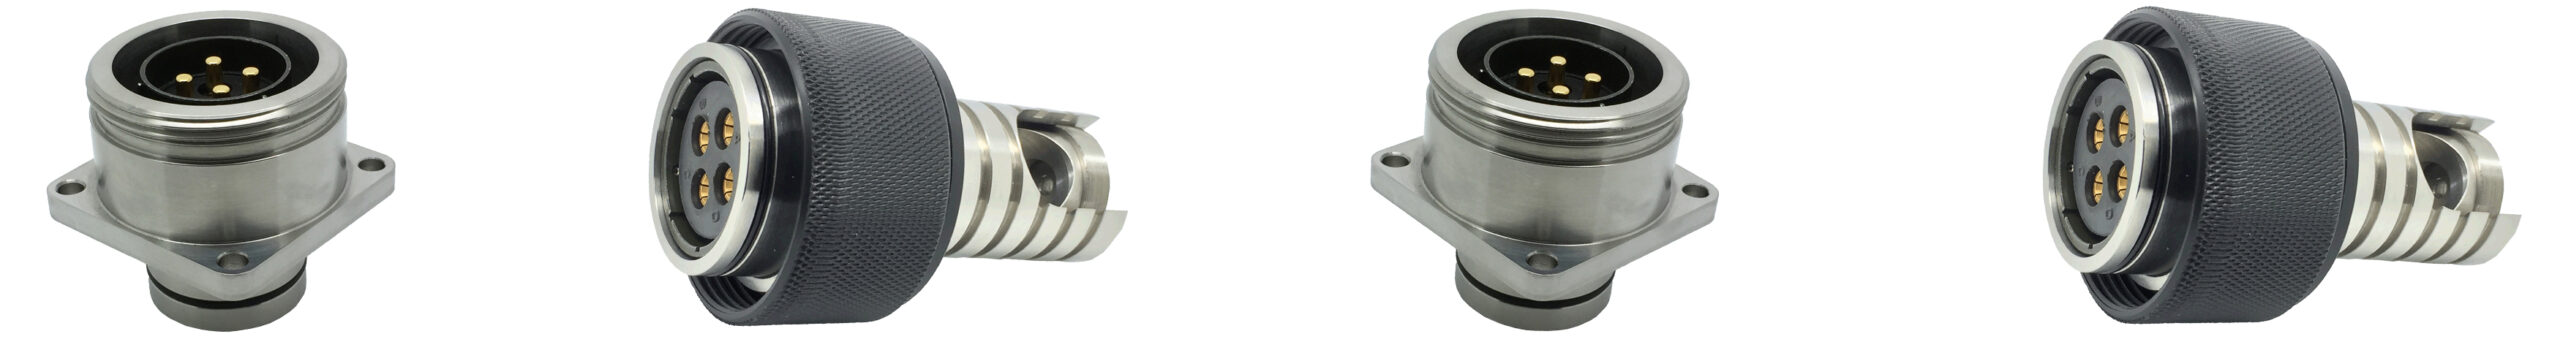 MetOcean Dry Mate connectors